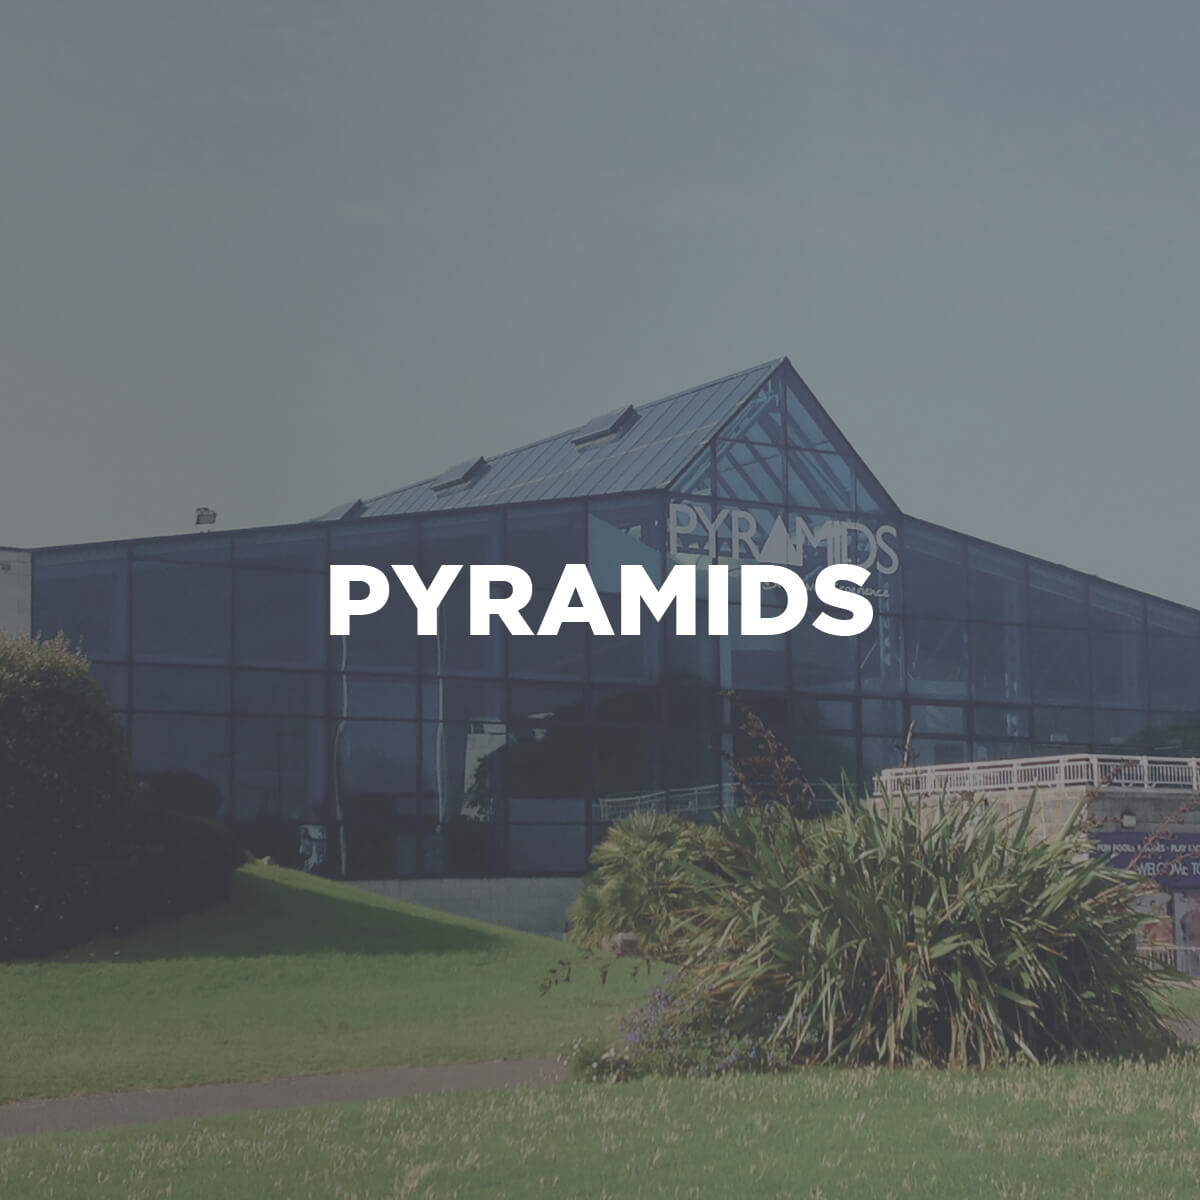 Bh live active gyms pools classes and more get more active for Pyramid swimming pool portsmouth